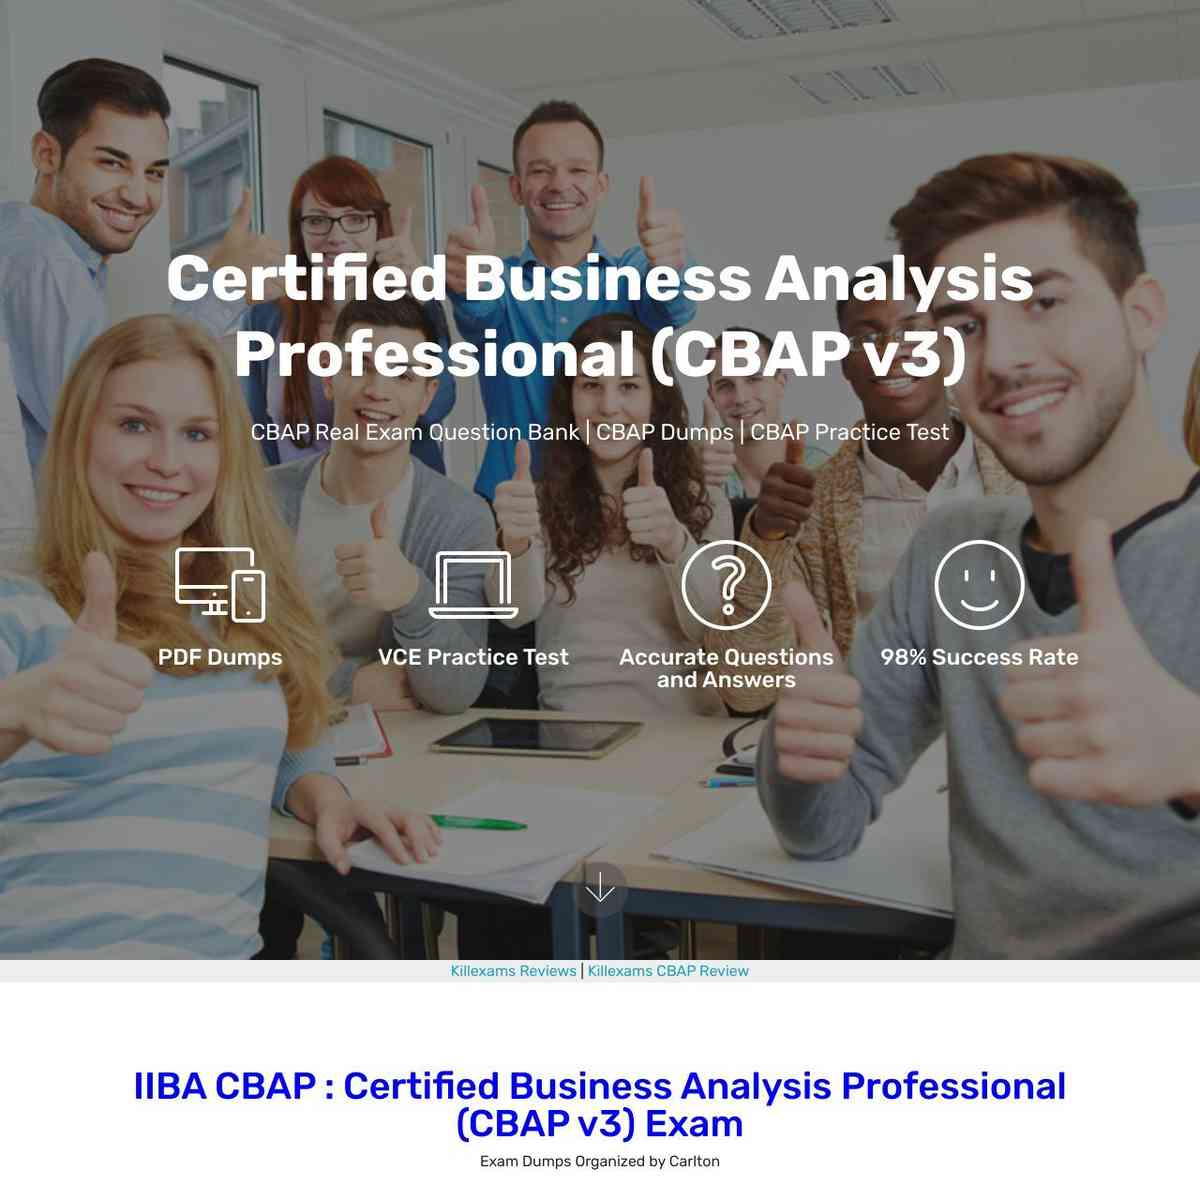 Real CBAP questions that verified up in test today